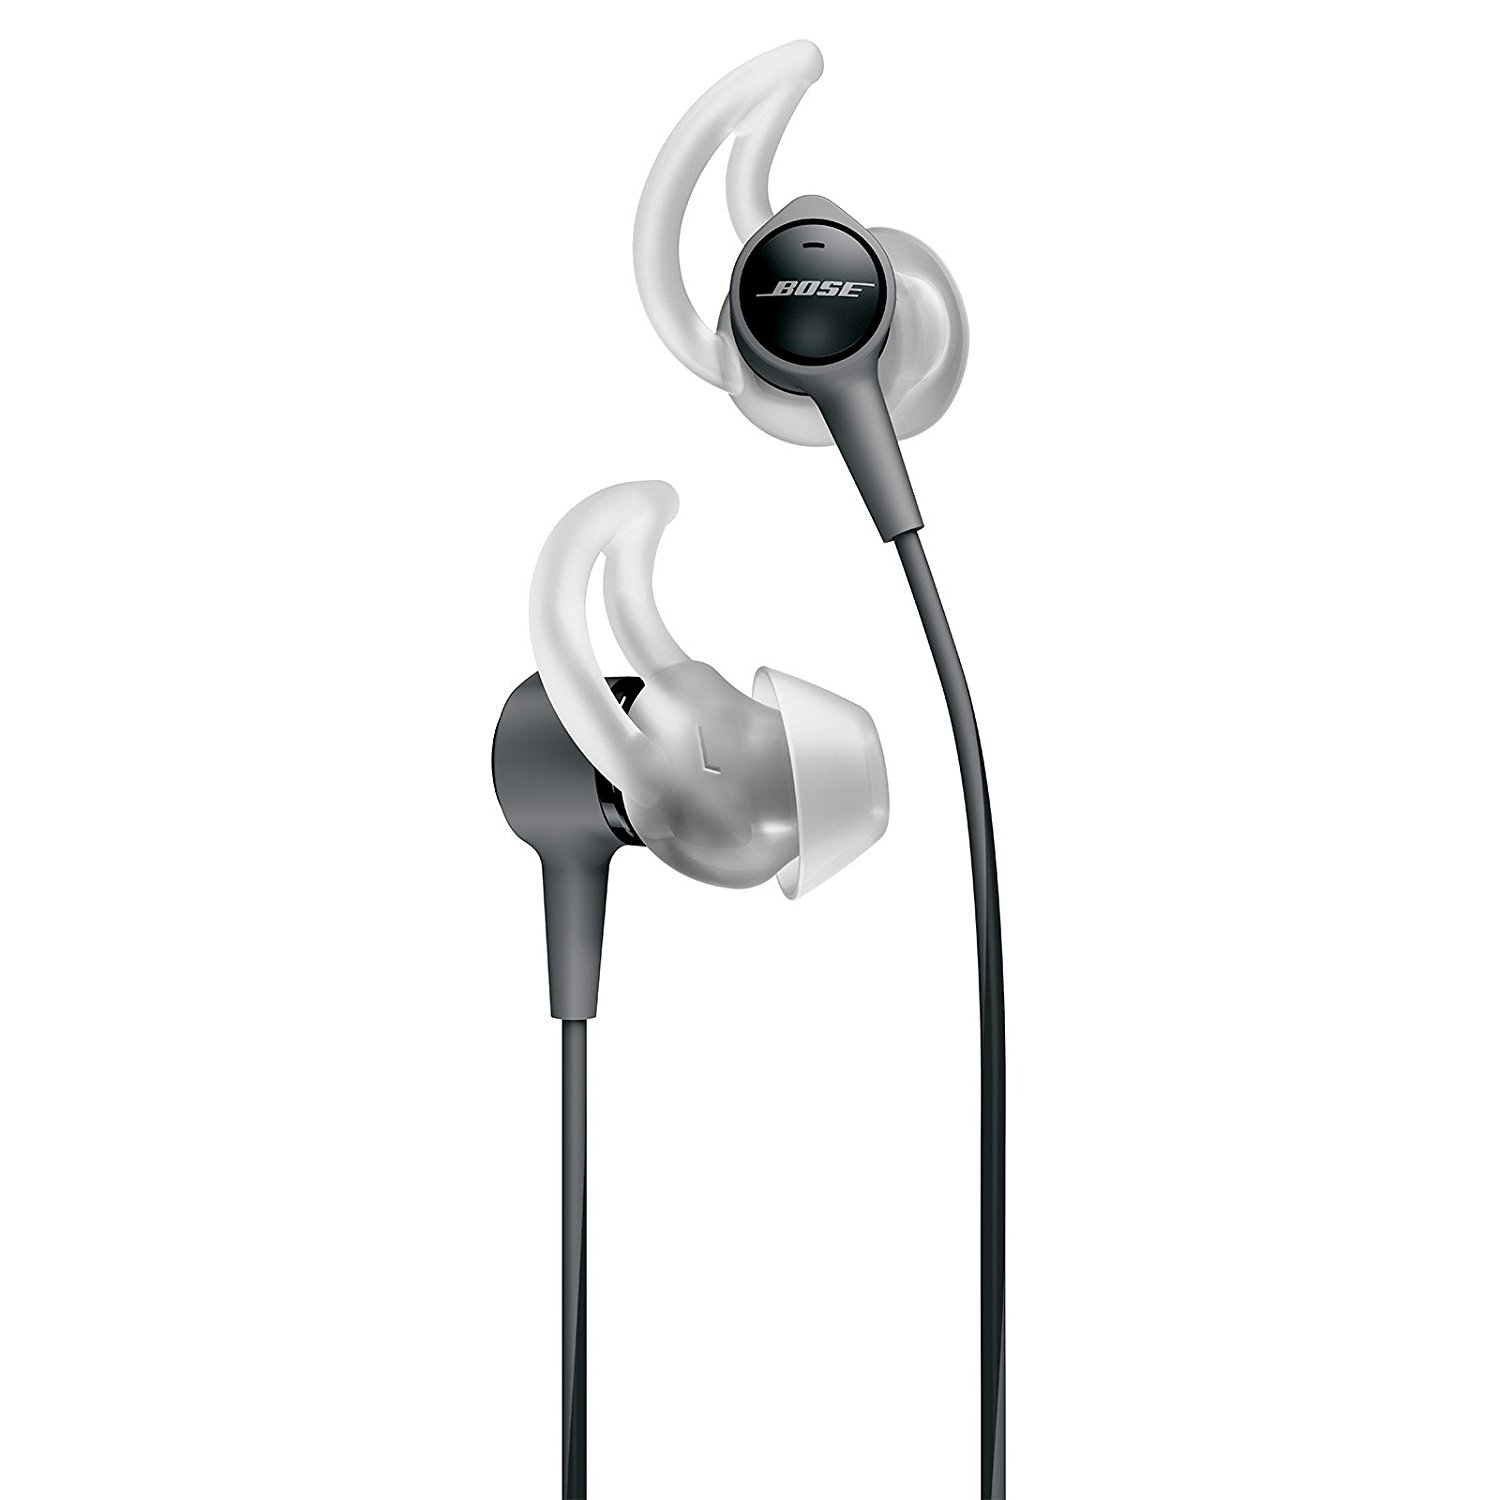 d4141efc63e143 Bose SoundTrue Ultra in-ear headphones – Samsung and Android devices,  Charcoal